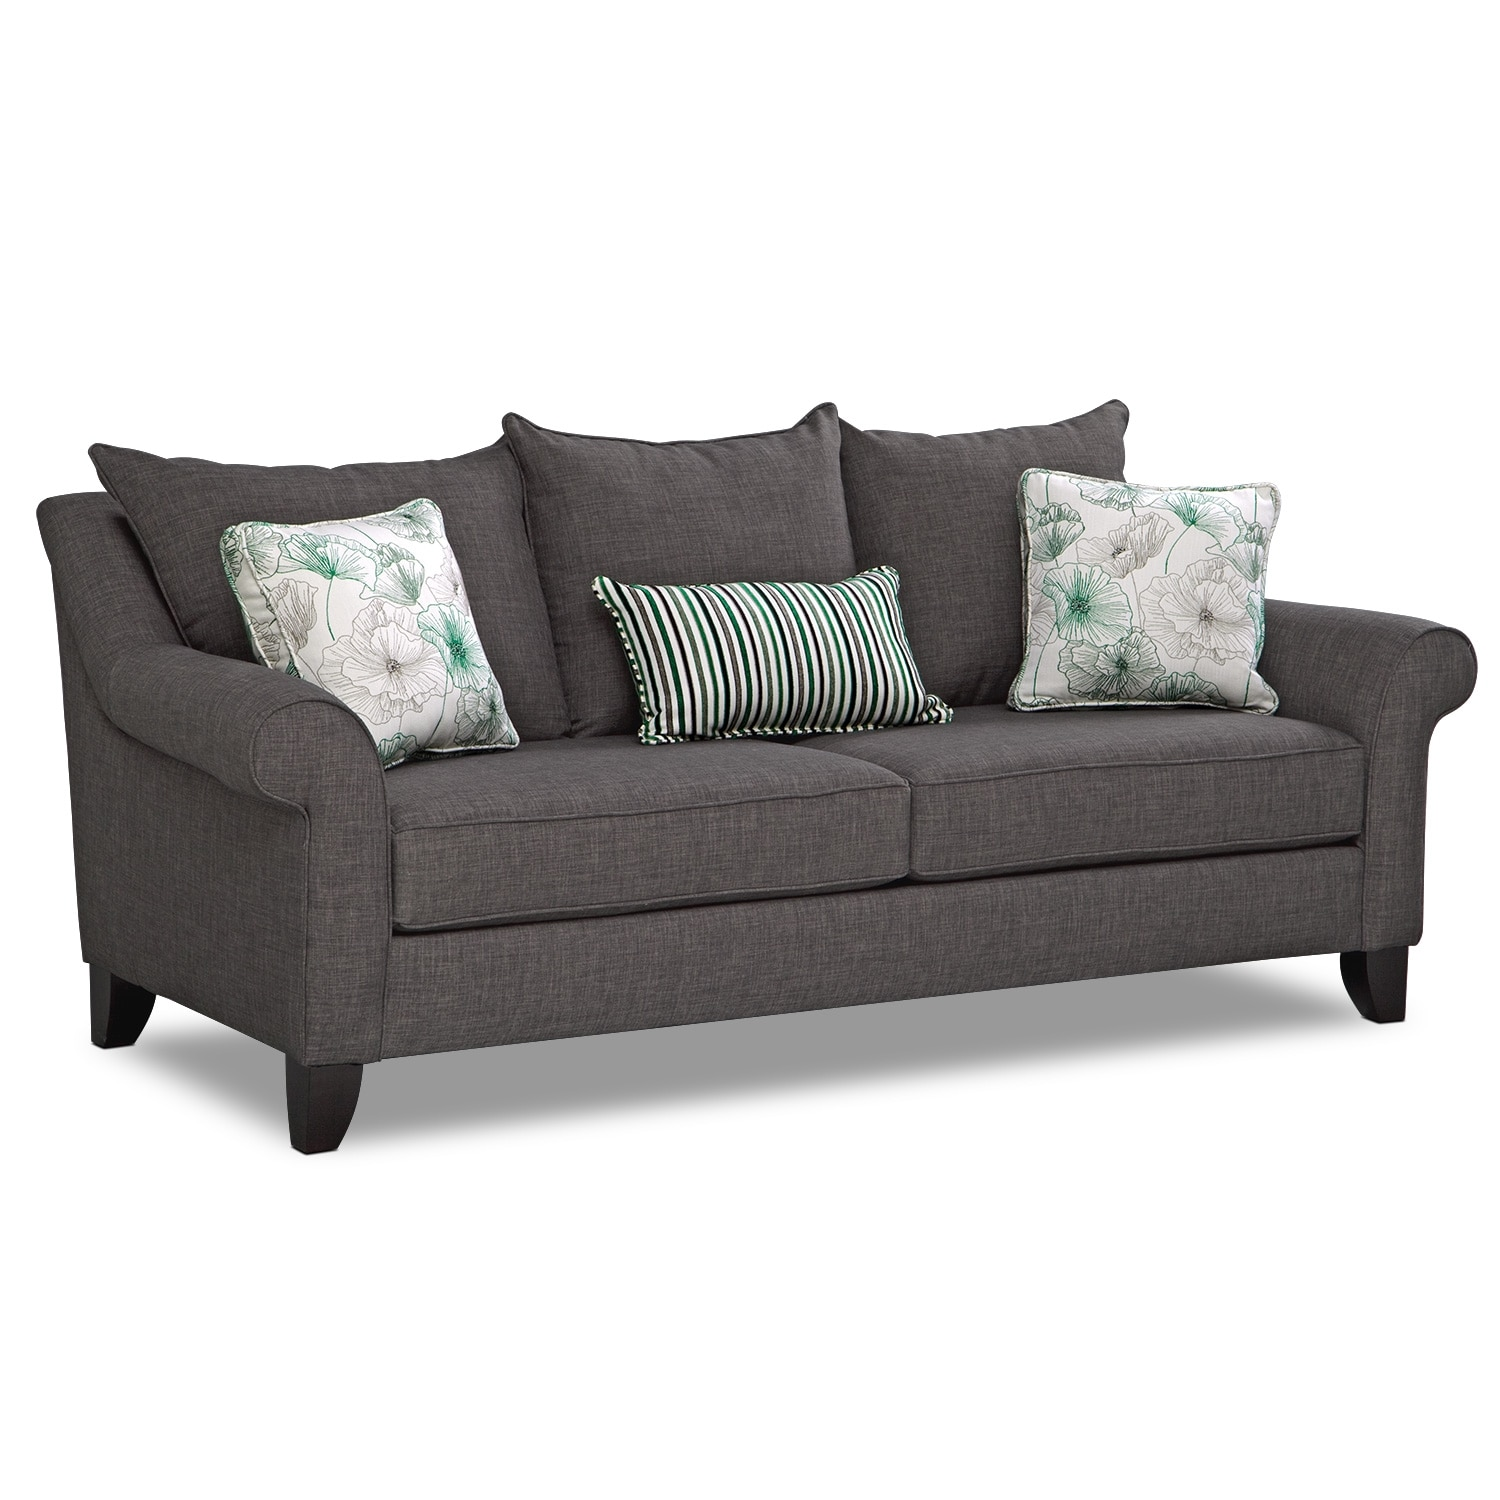 Living Room Furniture - Jasmine Sofa - Charcoal